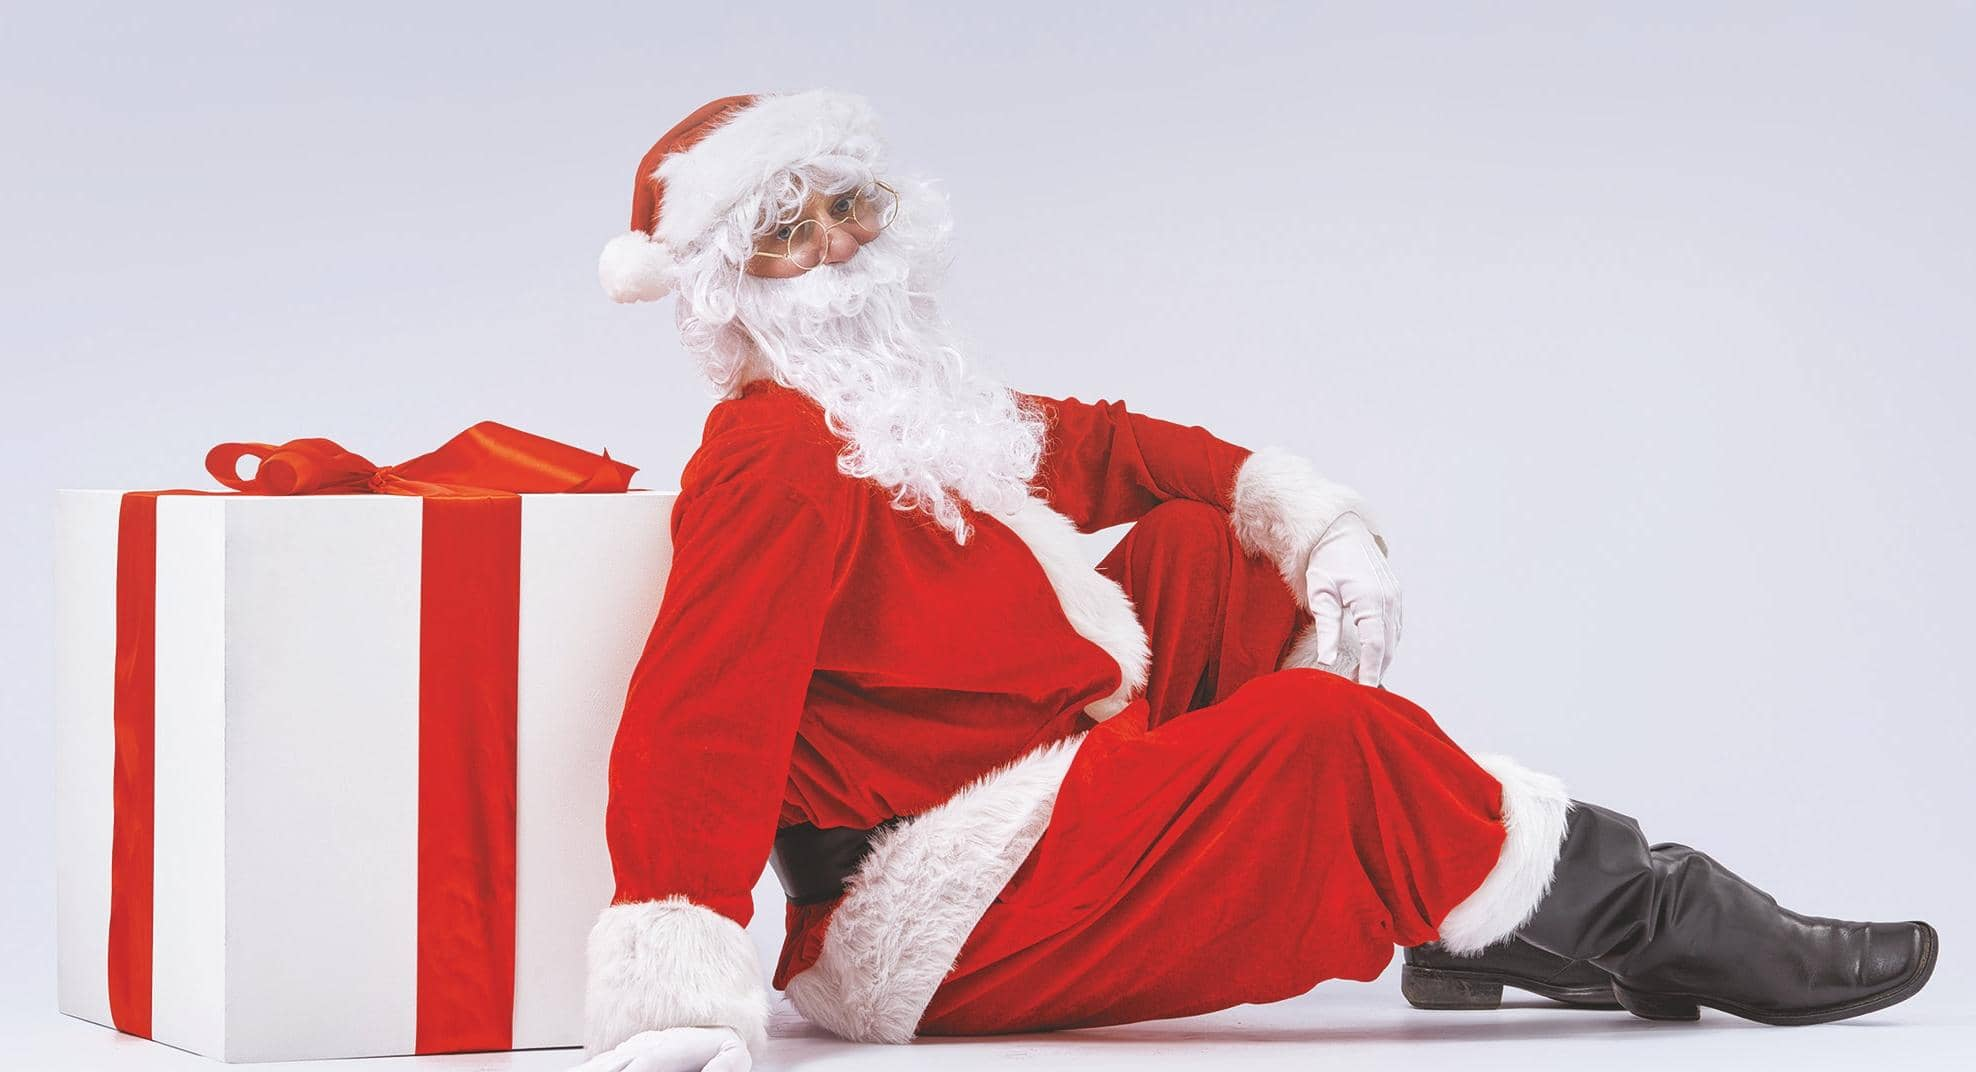 My Time With Santa